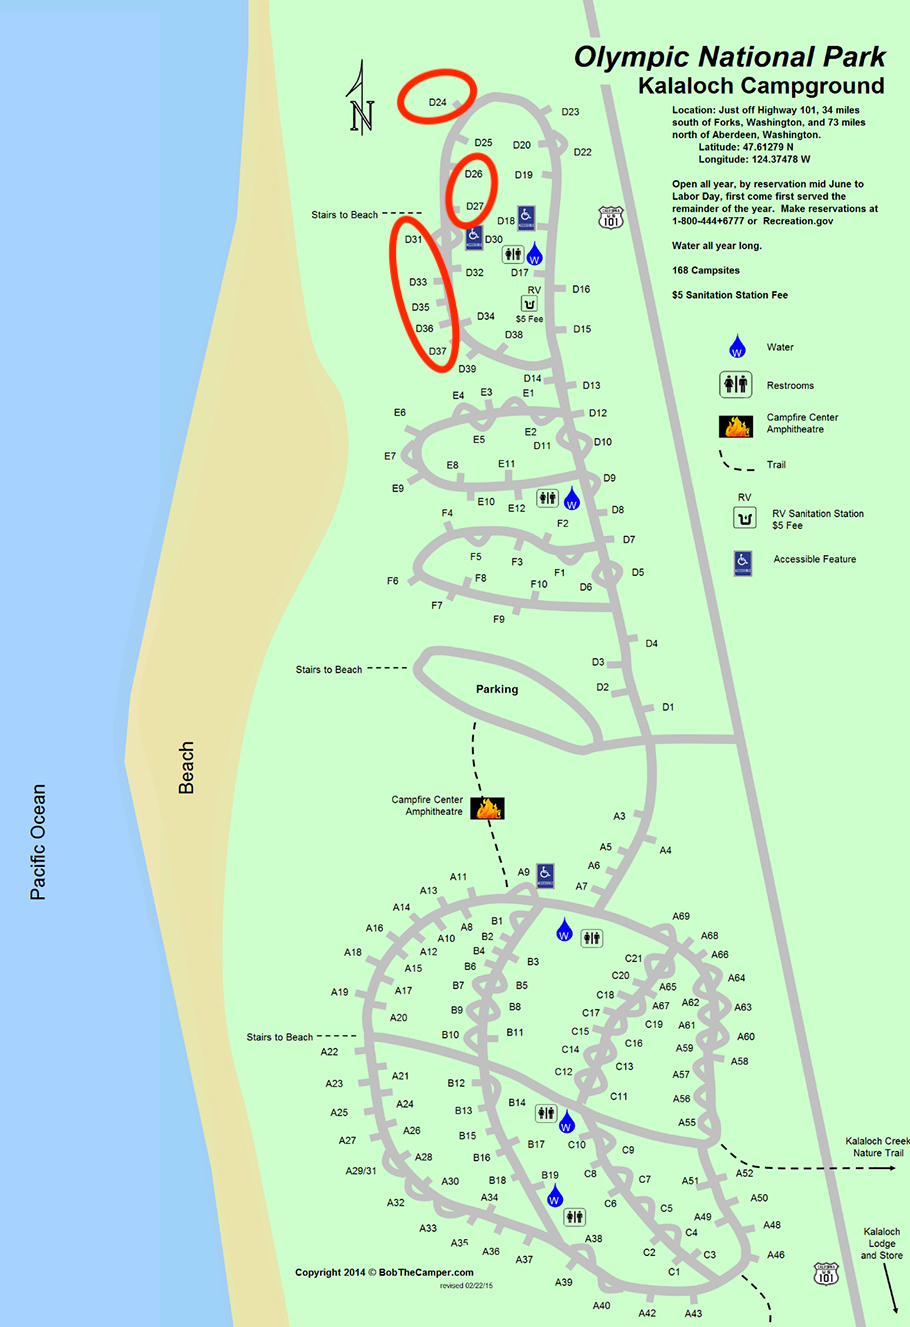 Olympic_National_Park_Kalaloch_Campground_Map_2-22-15-1311x1912.jpg